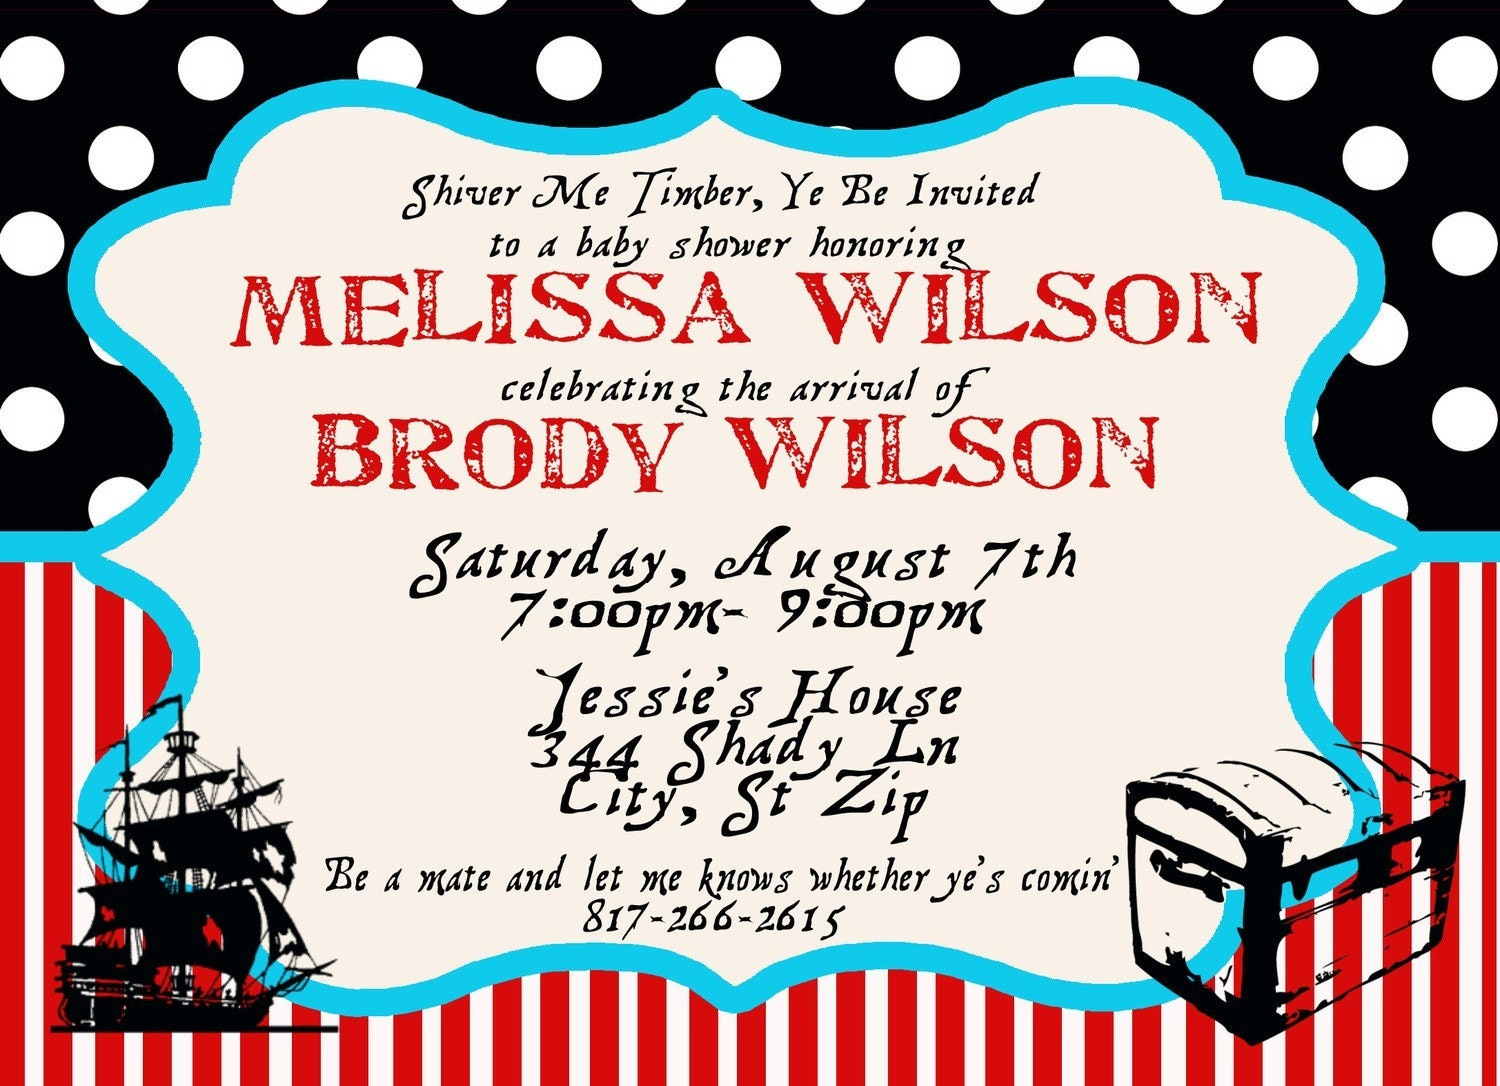 Pirate Baby Shower Invitations could be nice ideas for your invitation template